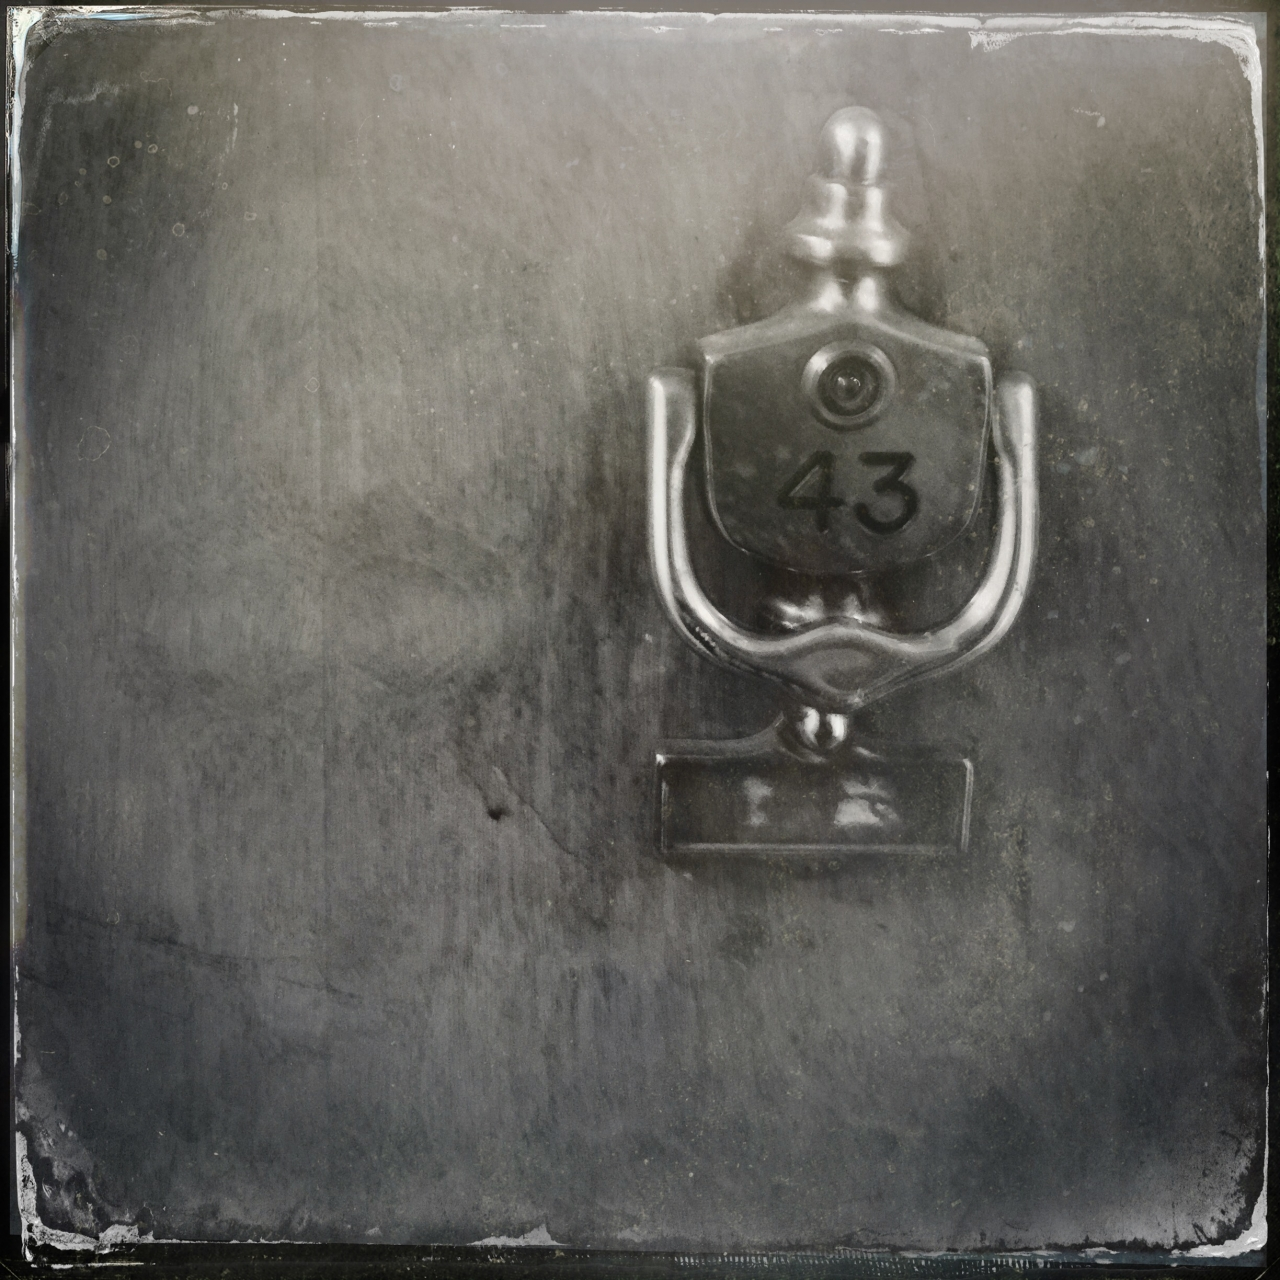 Shot with PureShot, edited with Camera+ clarity filter, Oggl Jane S lens and D-Plate TinType,...